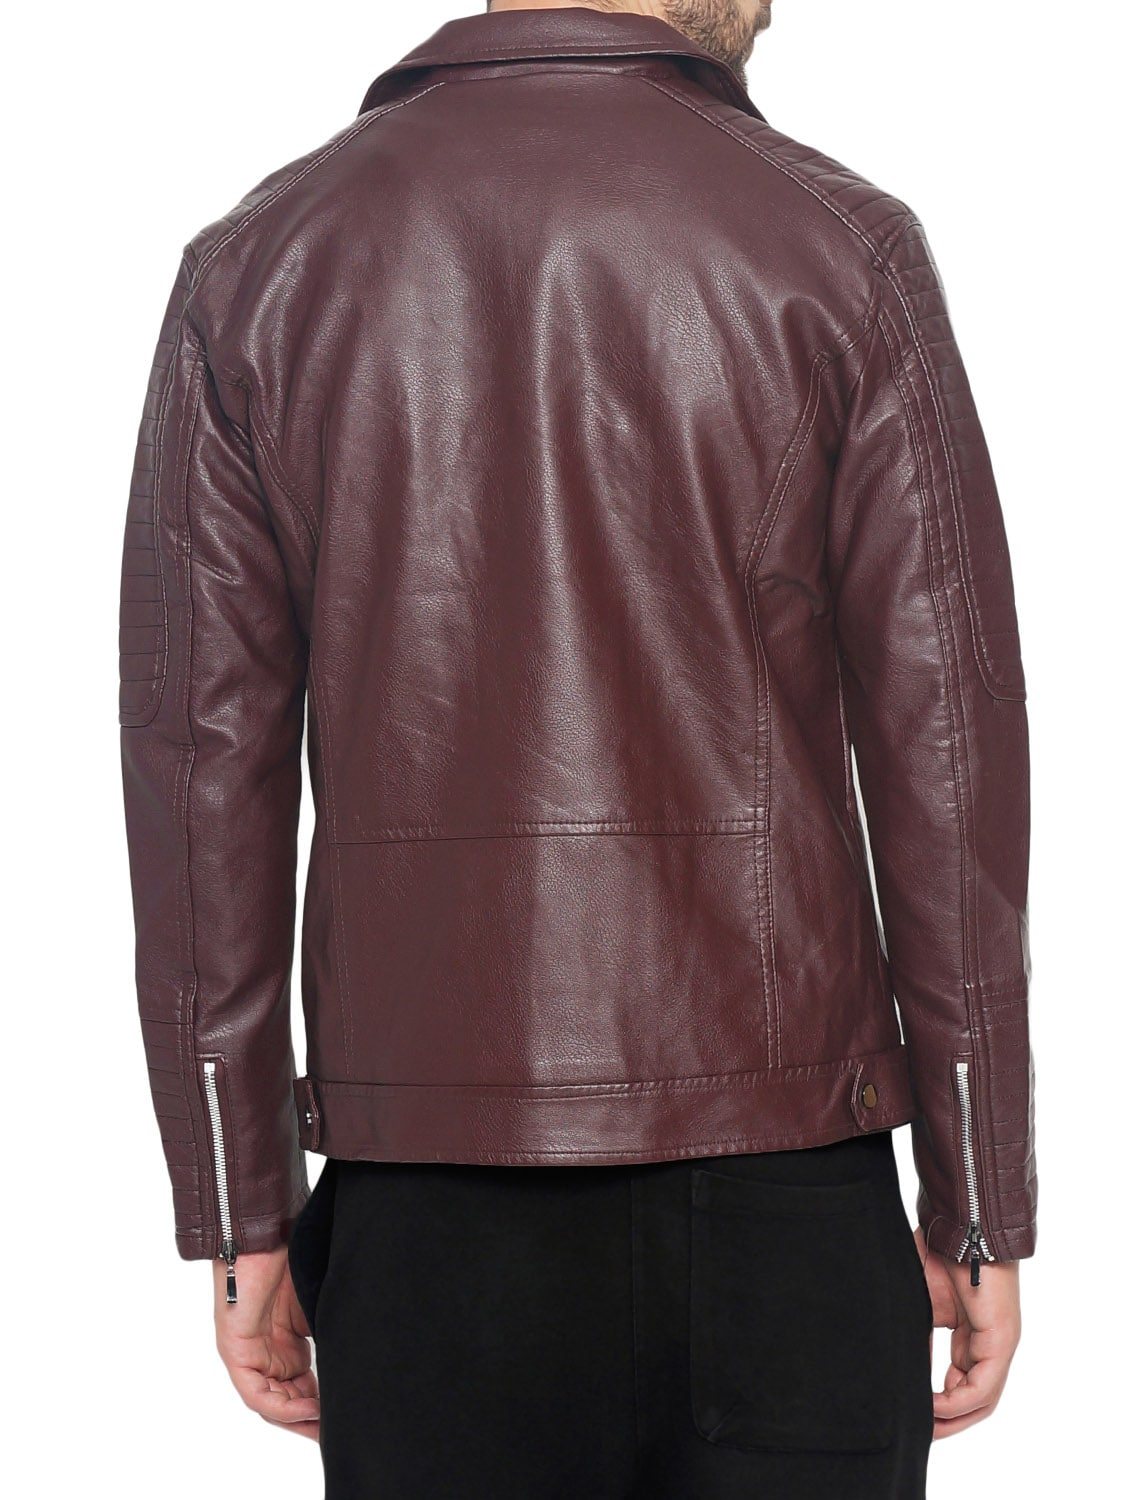 d473c591b6e3f Buy Red Faux Leather Biker Jacket for Men from The Indian Garage Co for  ₹2832 at 37% off